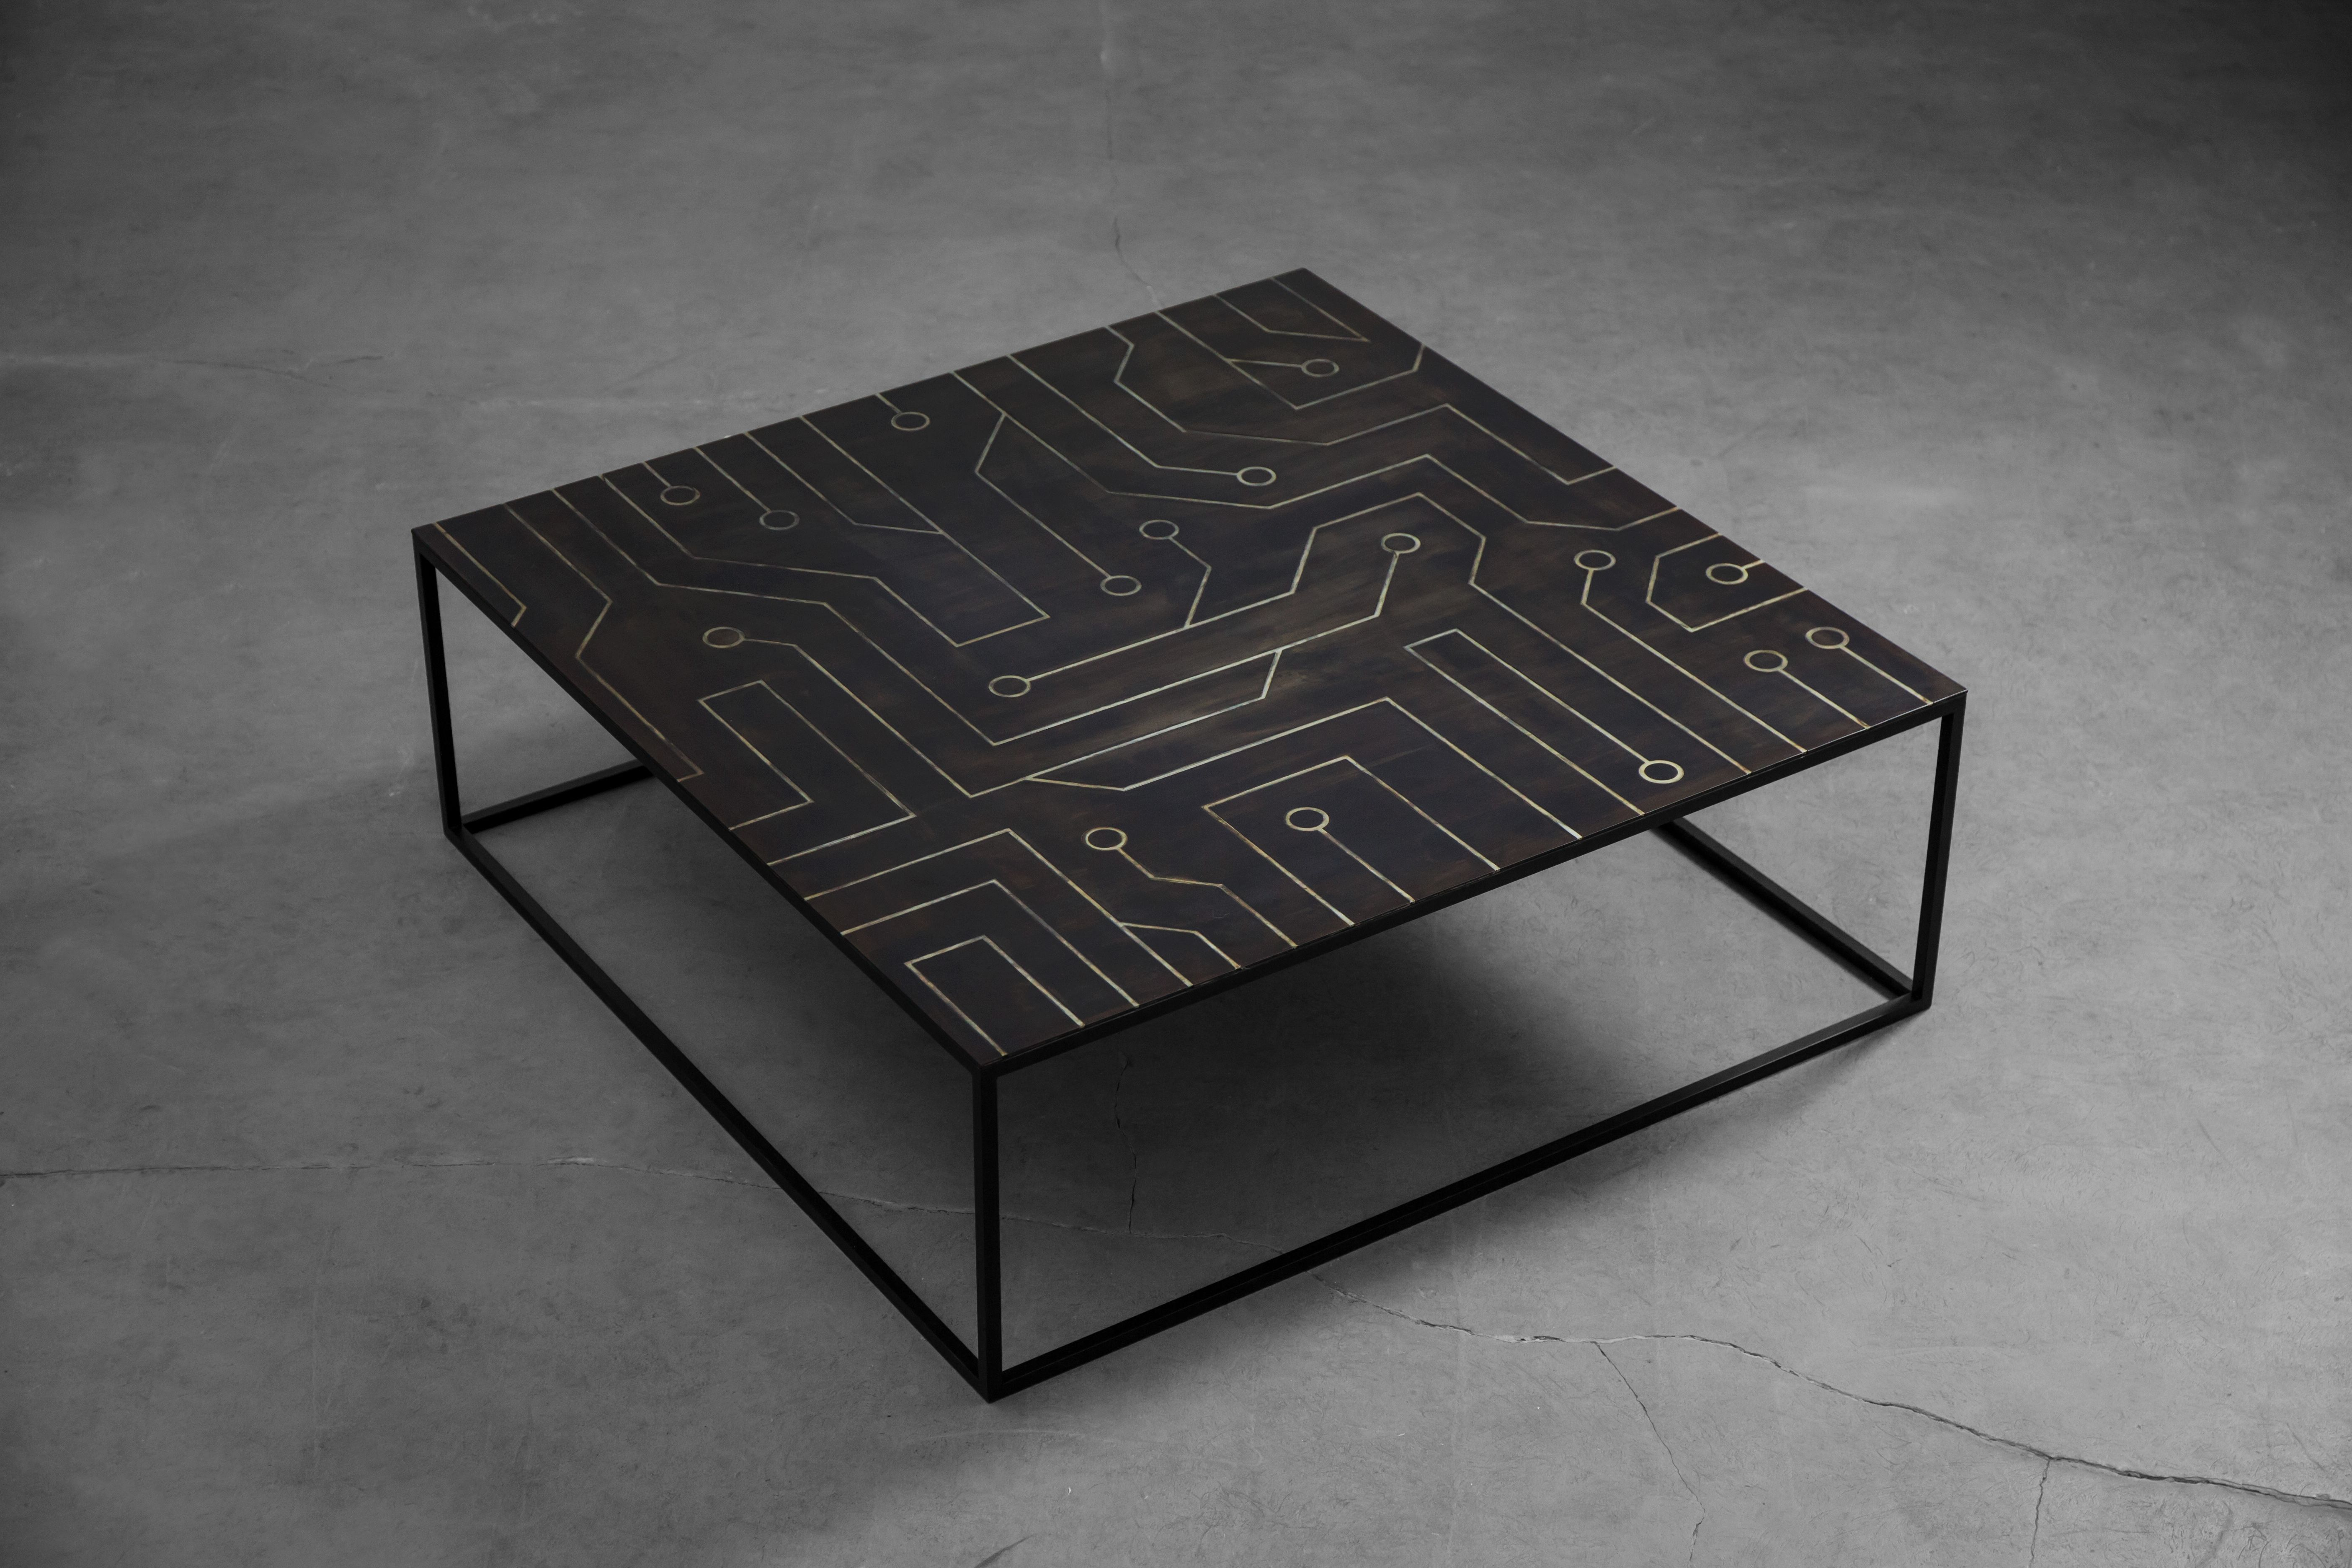 Brutalist Design Low Coffee Table With Steel Inlaid Top